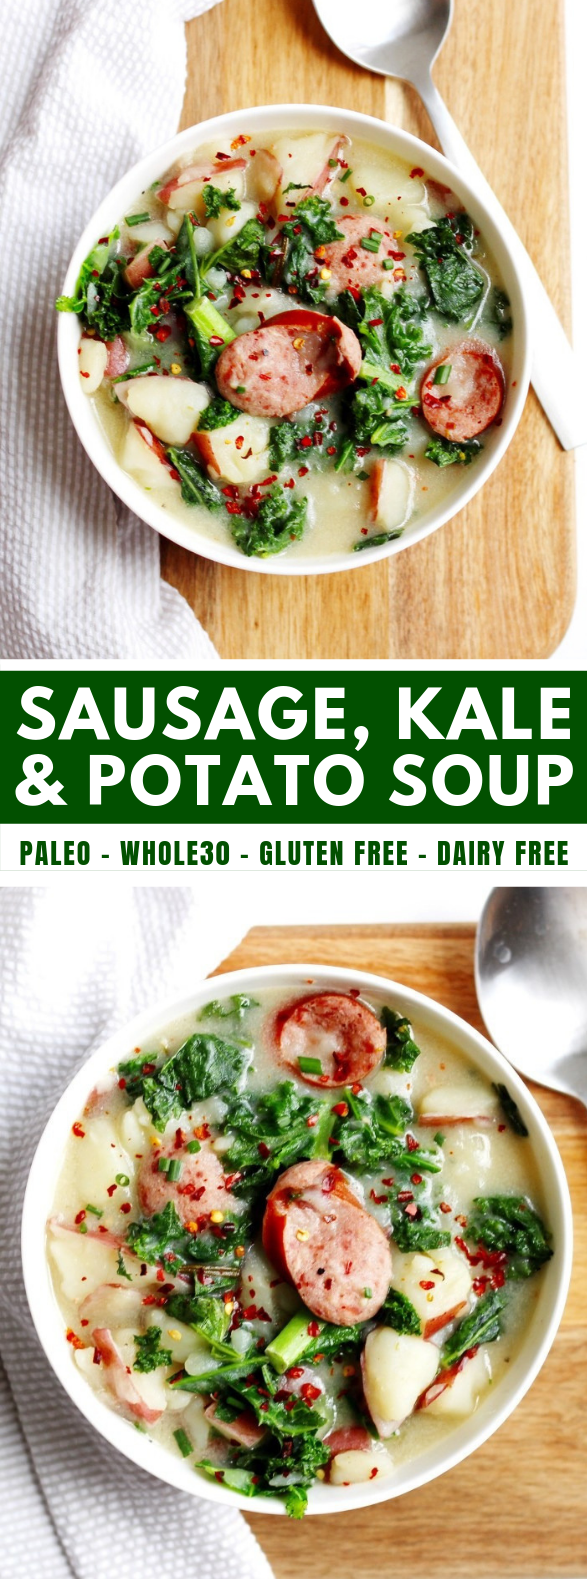 SAUSAGE, KALE AND POTATO SOUP #diet #comfortingsoup